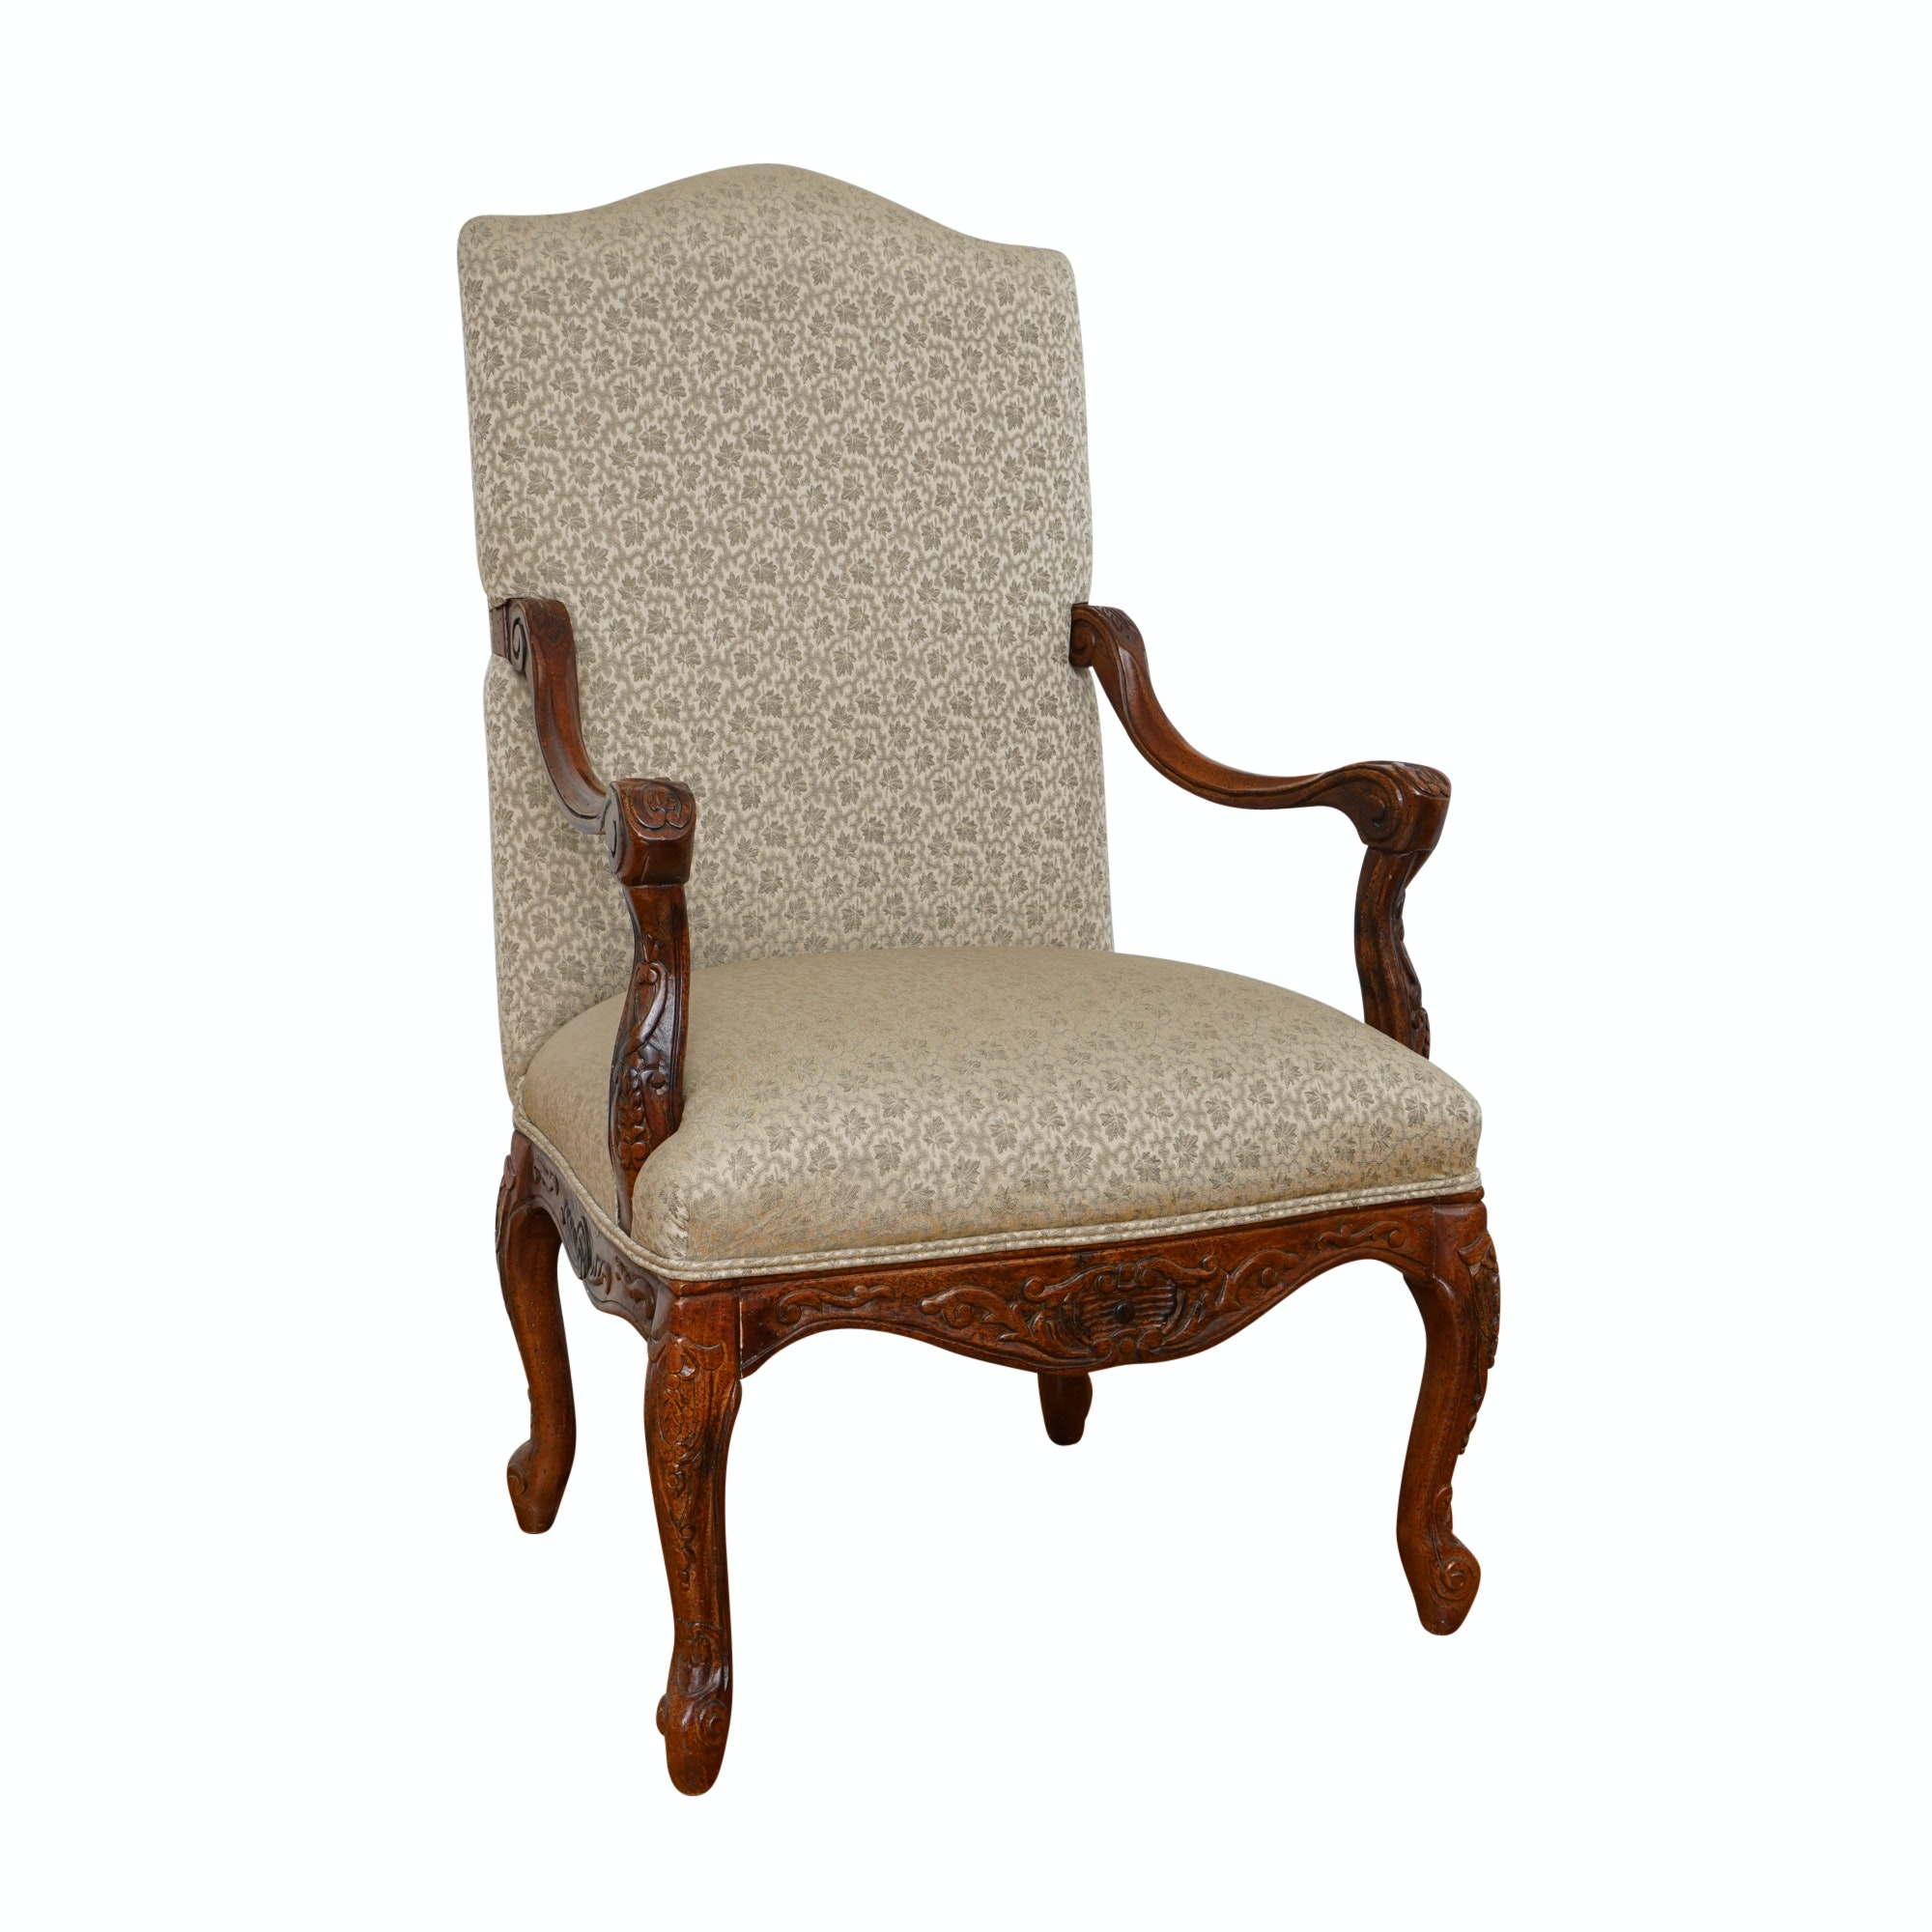 Contemporary French Provincial Style Upholstered Armchair